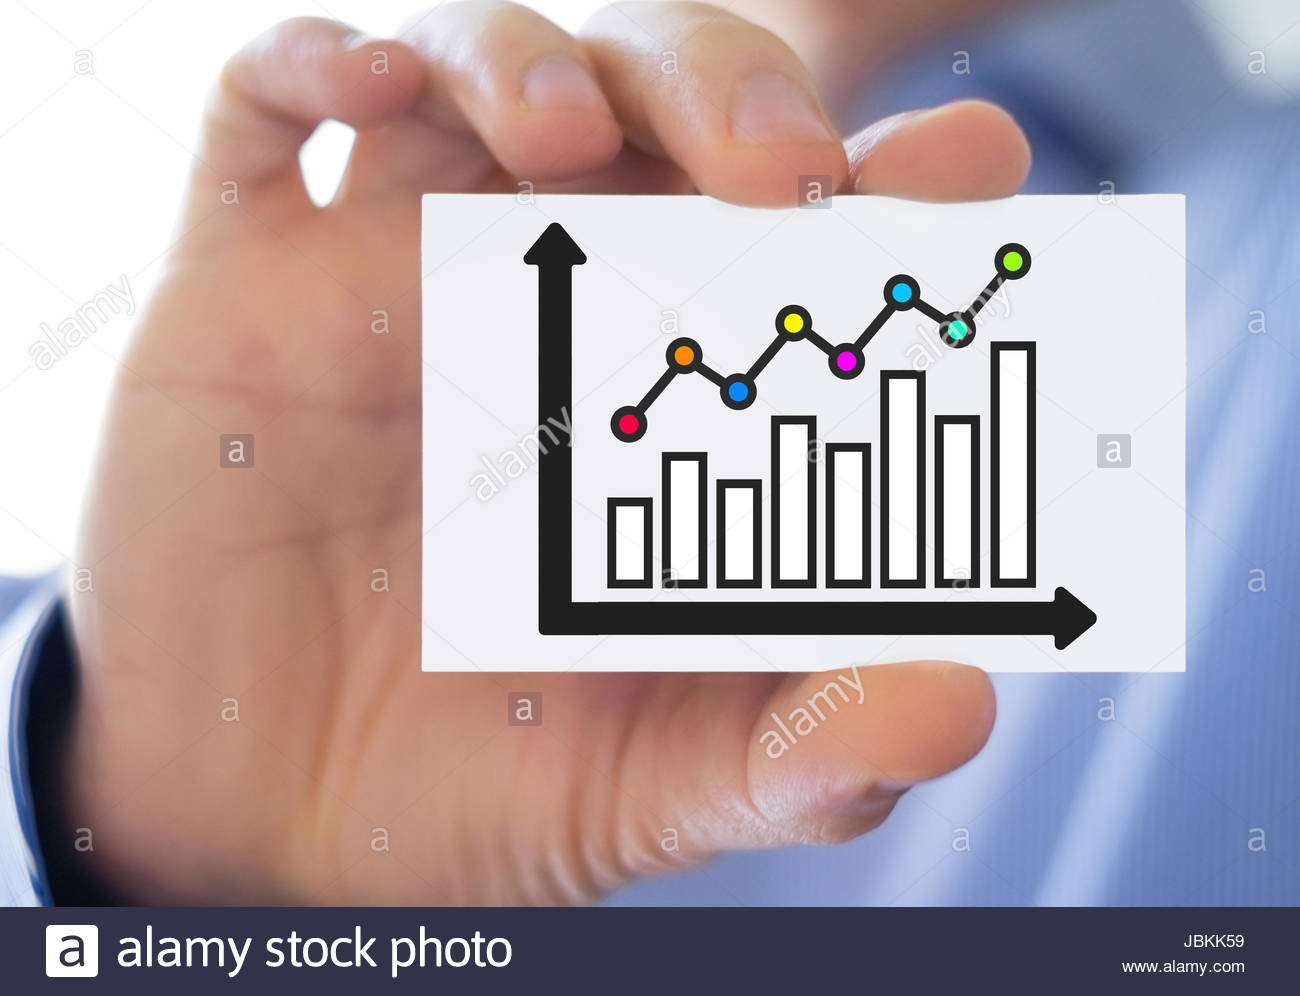 Business graph and chart - Stock Image